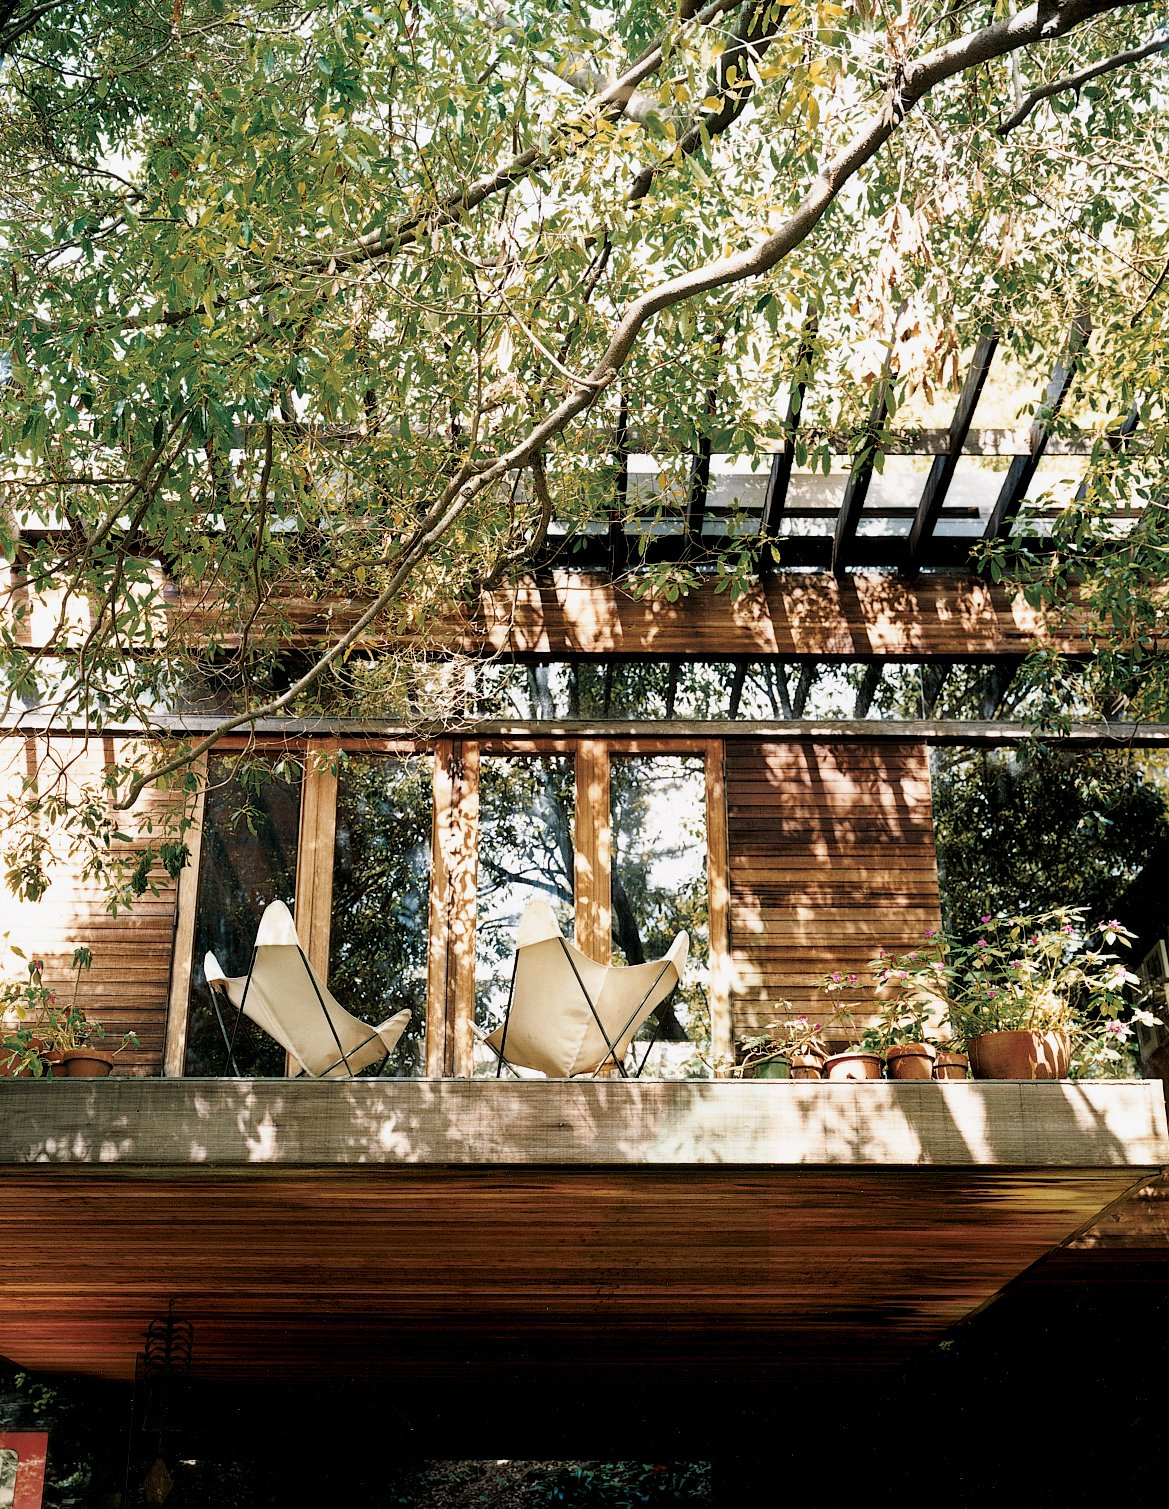 The terrace at the front of the house. Ray Kappe-Designed Multilevel House in Los Angeles - Photo 8 of 12